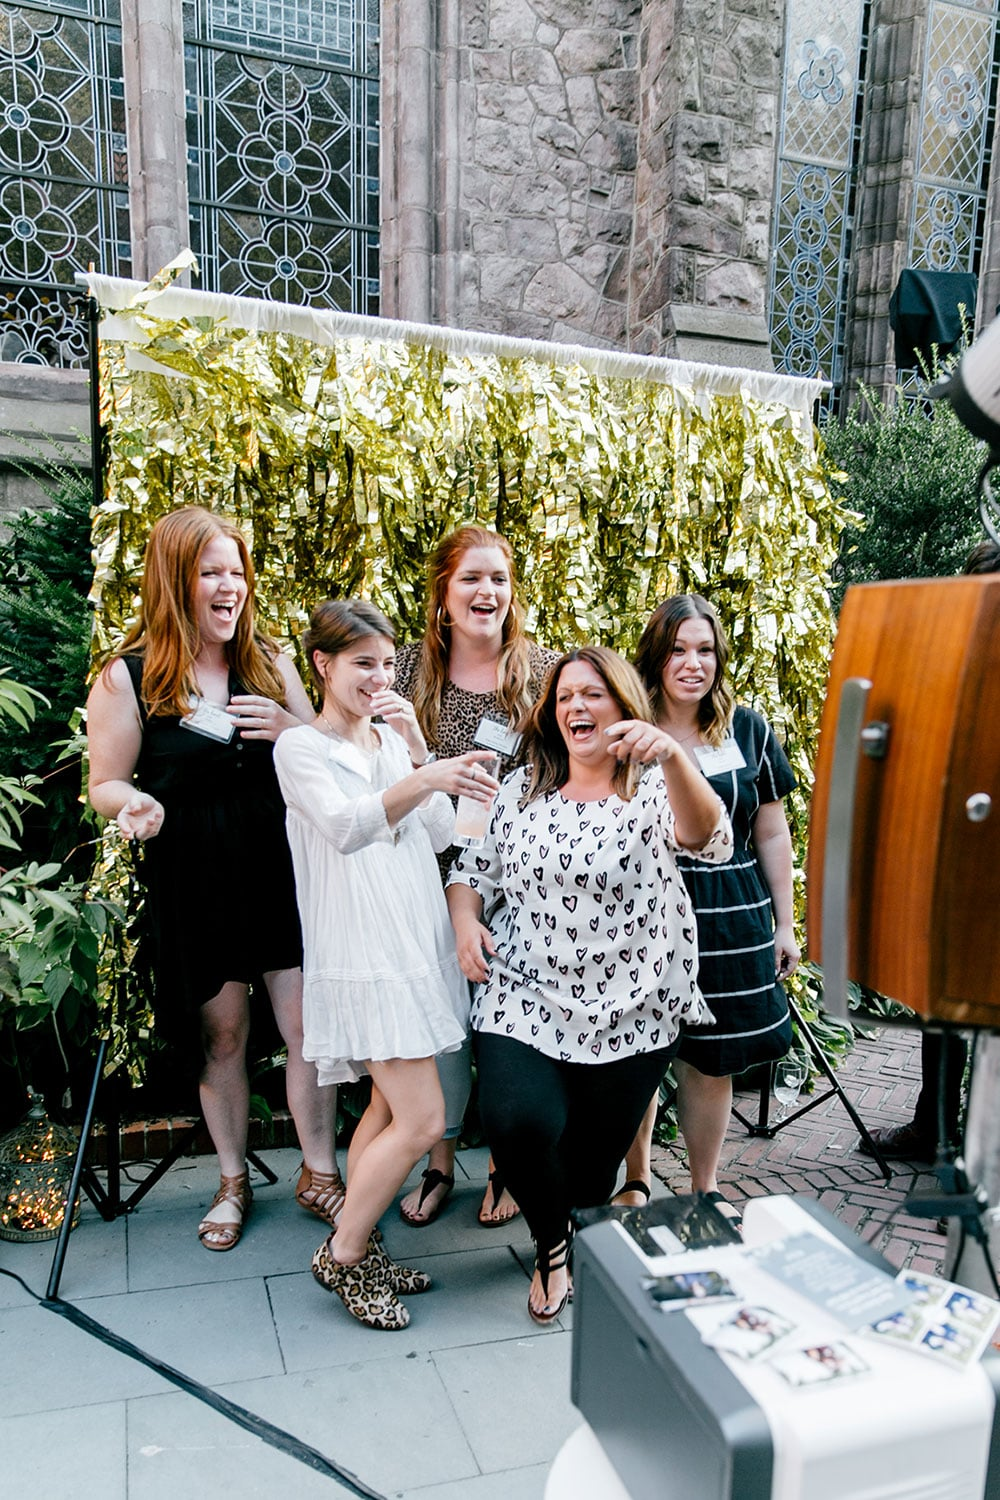 Collaboration between The Knot & Philadelphia Event Planner Heart & Dash